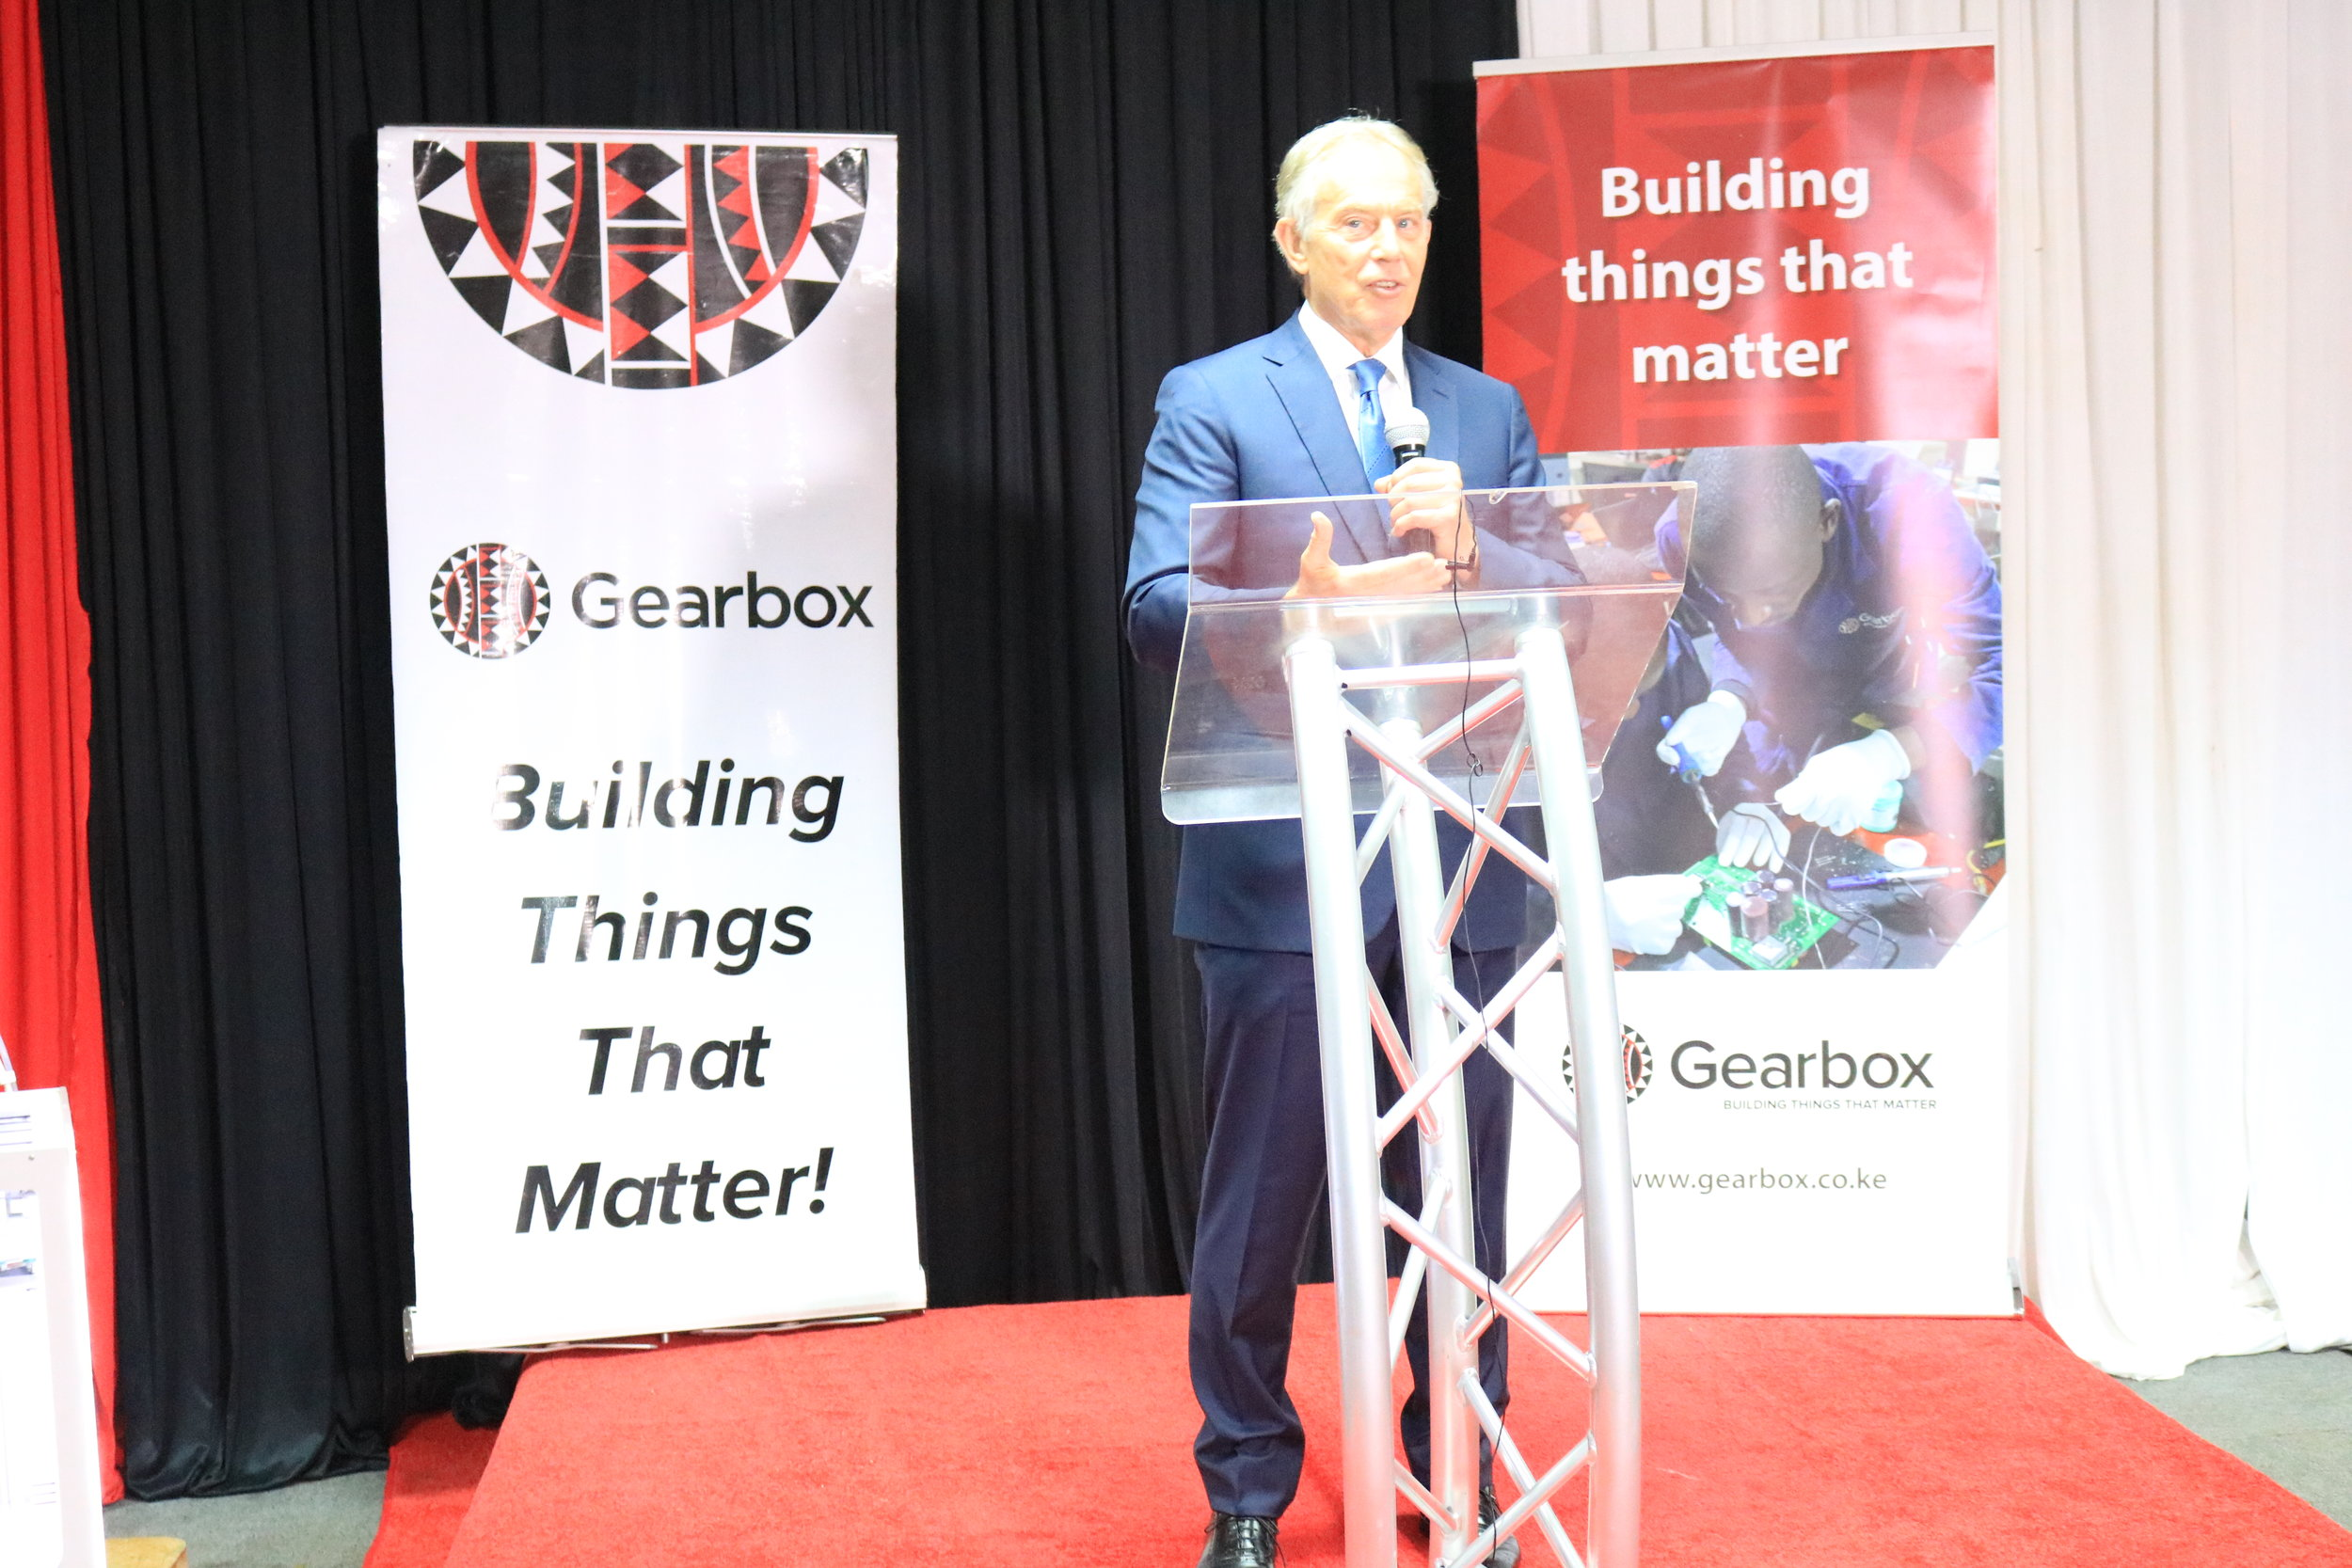 Tony Blair speaking at Gearbox